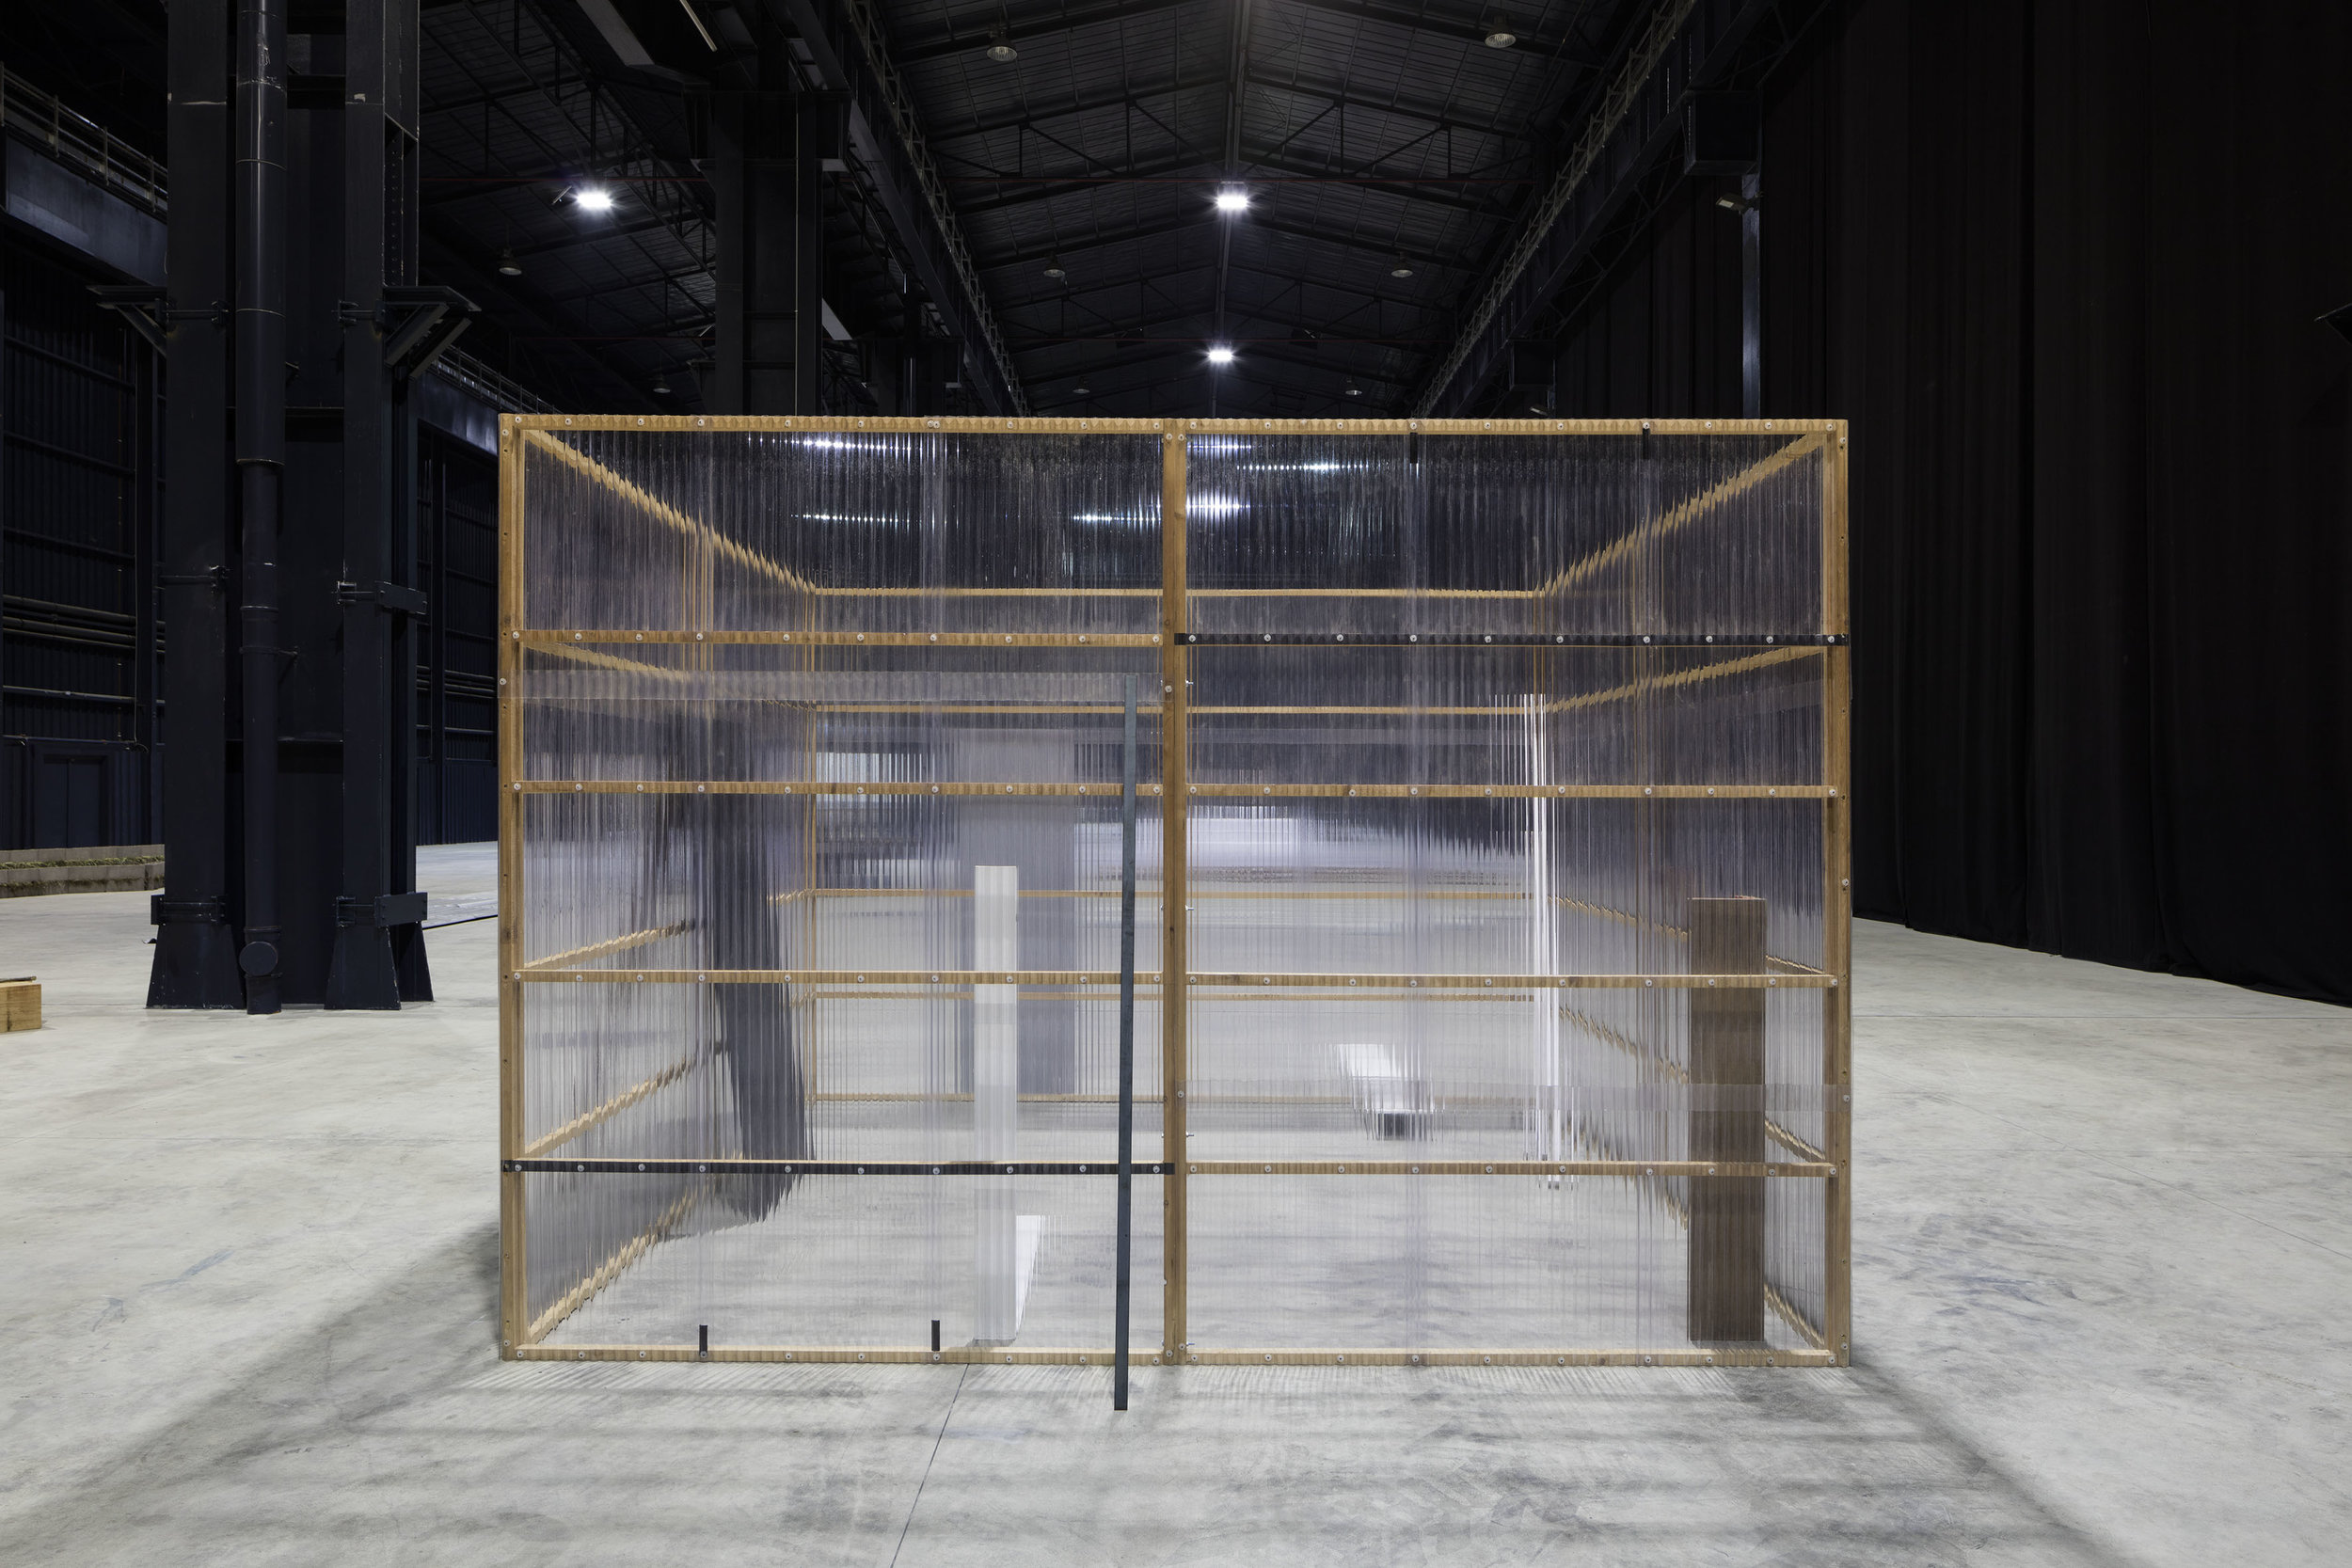 Concealed and Enclosed Surroundings , 1997 包囲周閉 ( Hōi Shūhei ) Wood, paint, metal bars, corrugated metal, corrugated plastic 250 x 340 x 340 centimeters Installation view,  Kishio Suga: Situations , Pirelli HangarBicocca, Milan, 2016 Photo: Agostino Osio; Courtesy Pirelli HangarBicocca, Milan